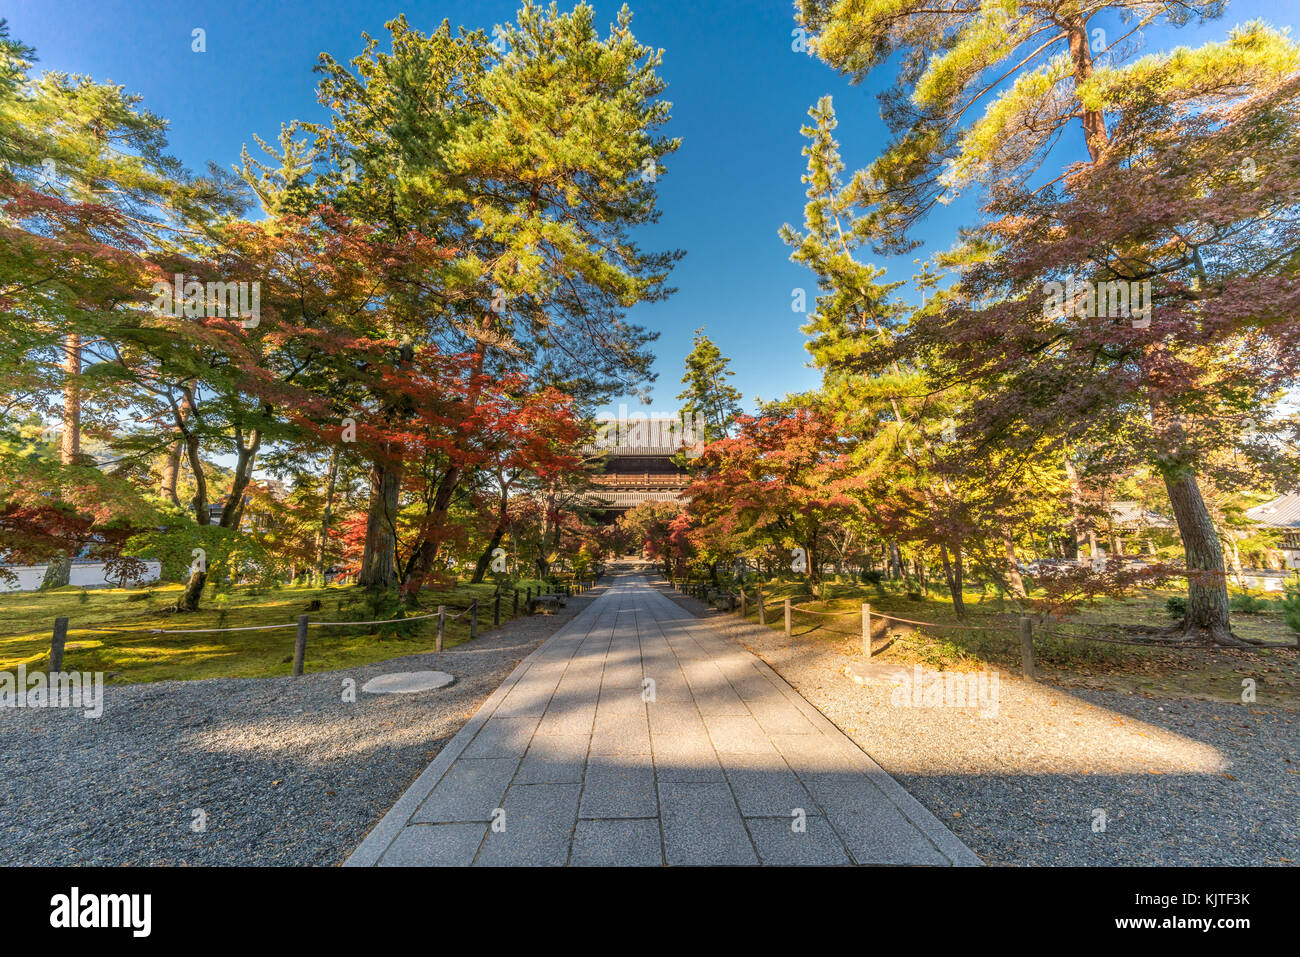 Early morning without tourists, Autumn colors fall foliage view of ...